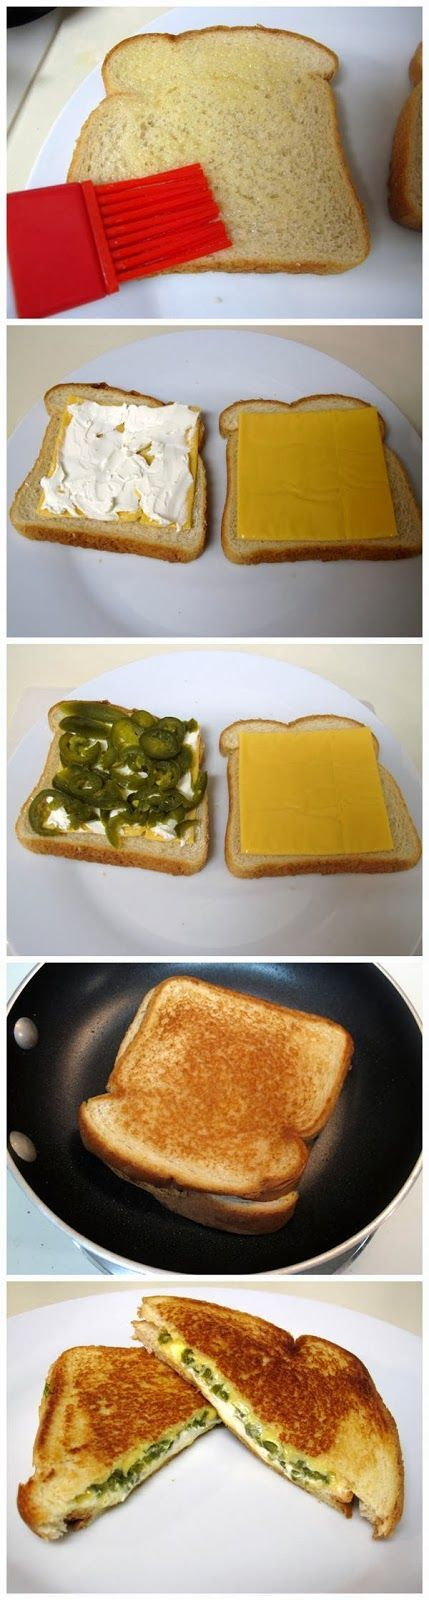 Jalapeno Popper Grilled Cheese Sandwiches!